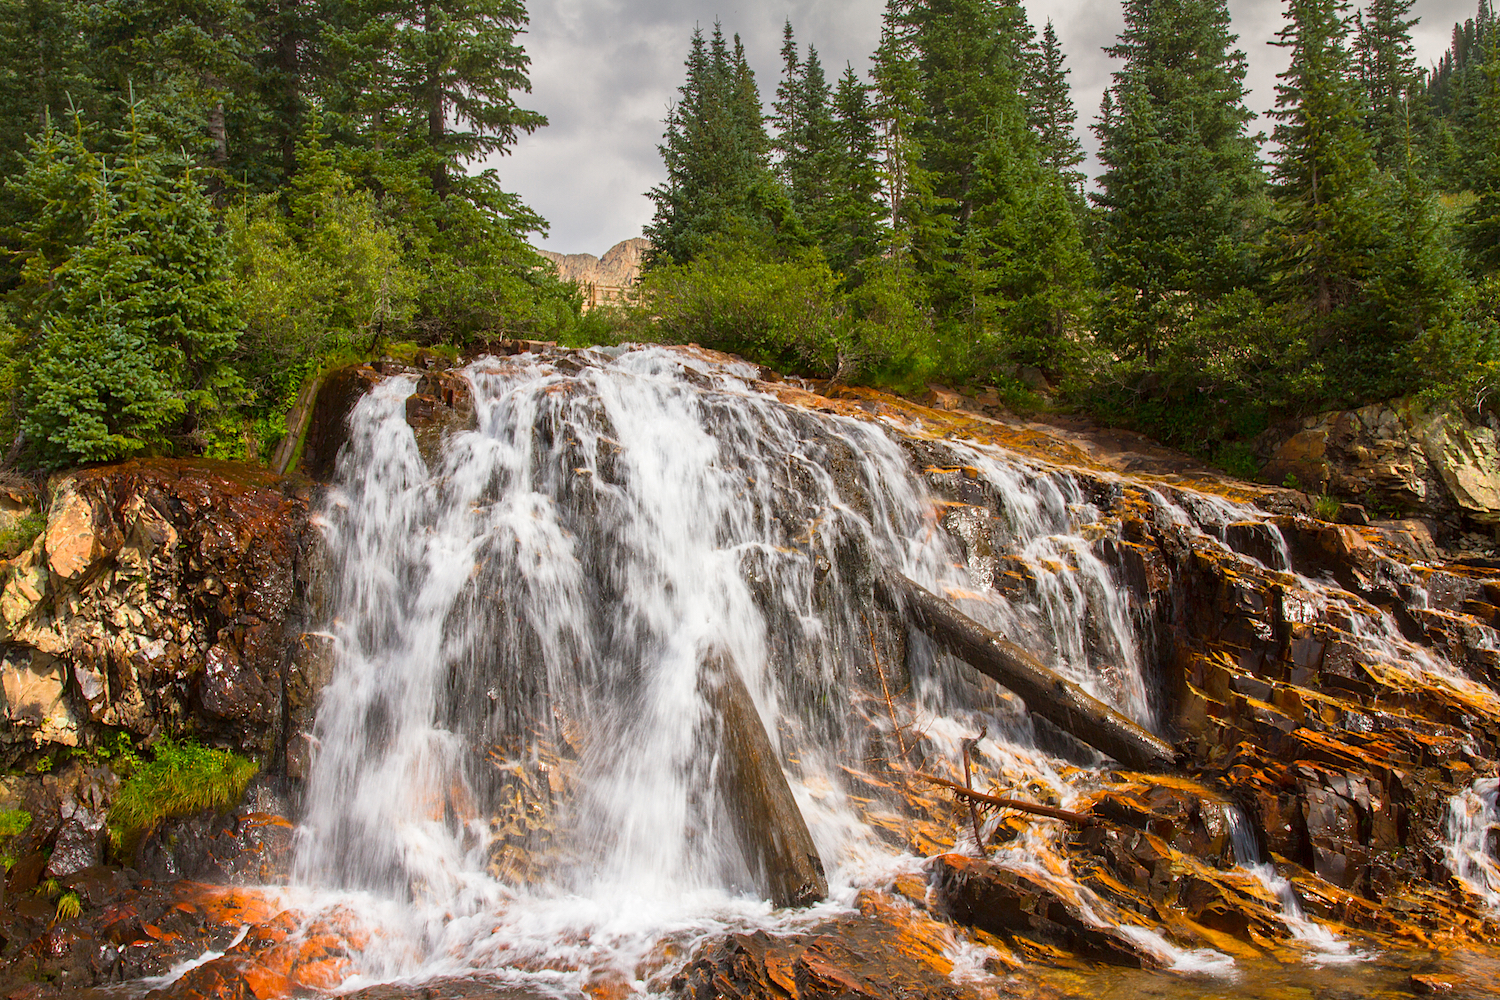 CASCADE DIVIDE WATERFALL, IMAGE # 5088